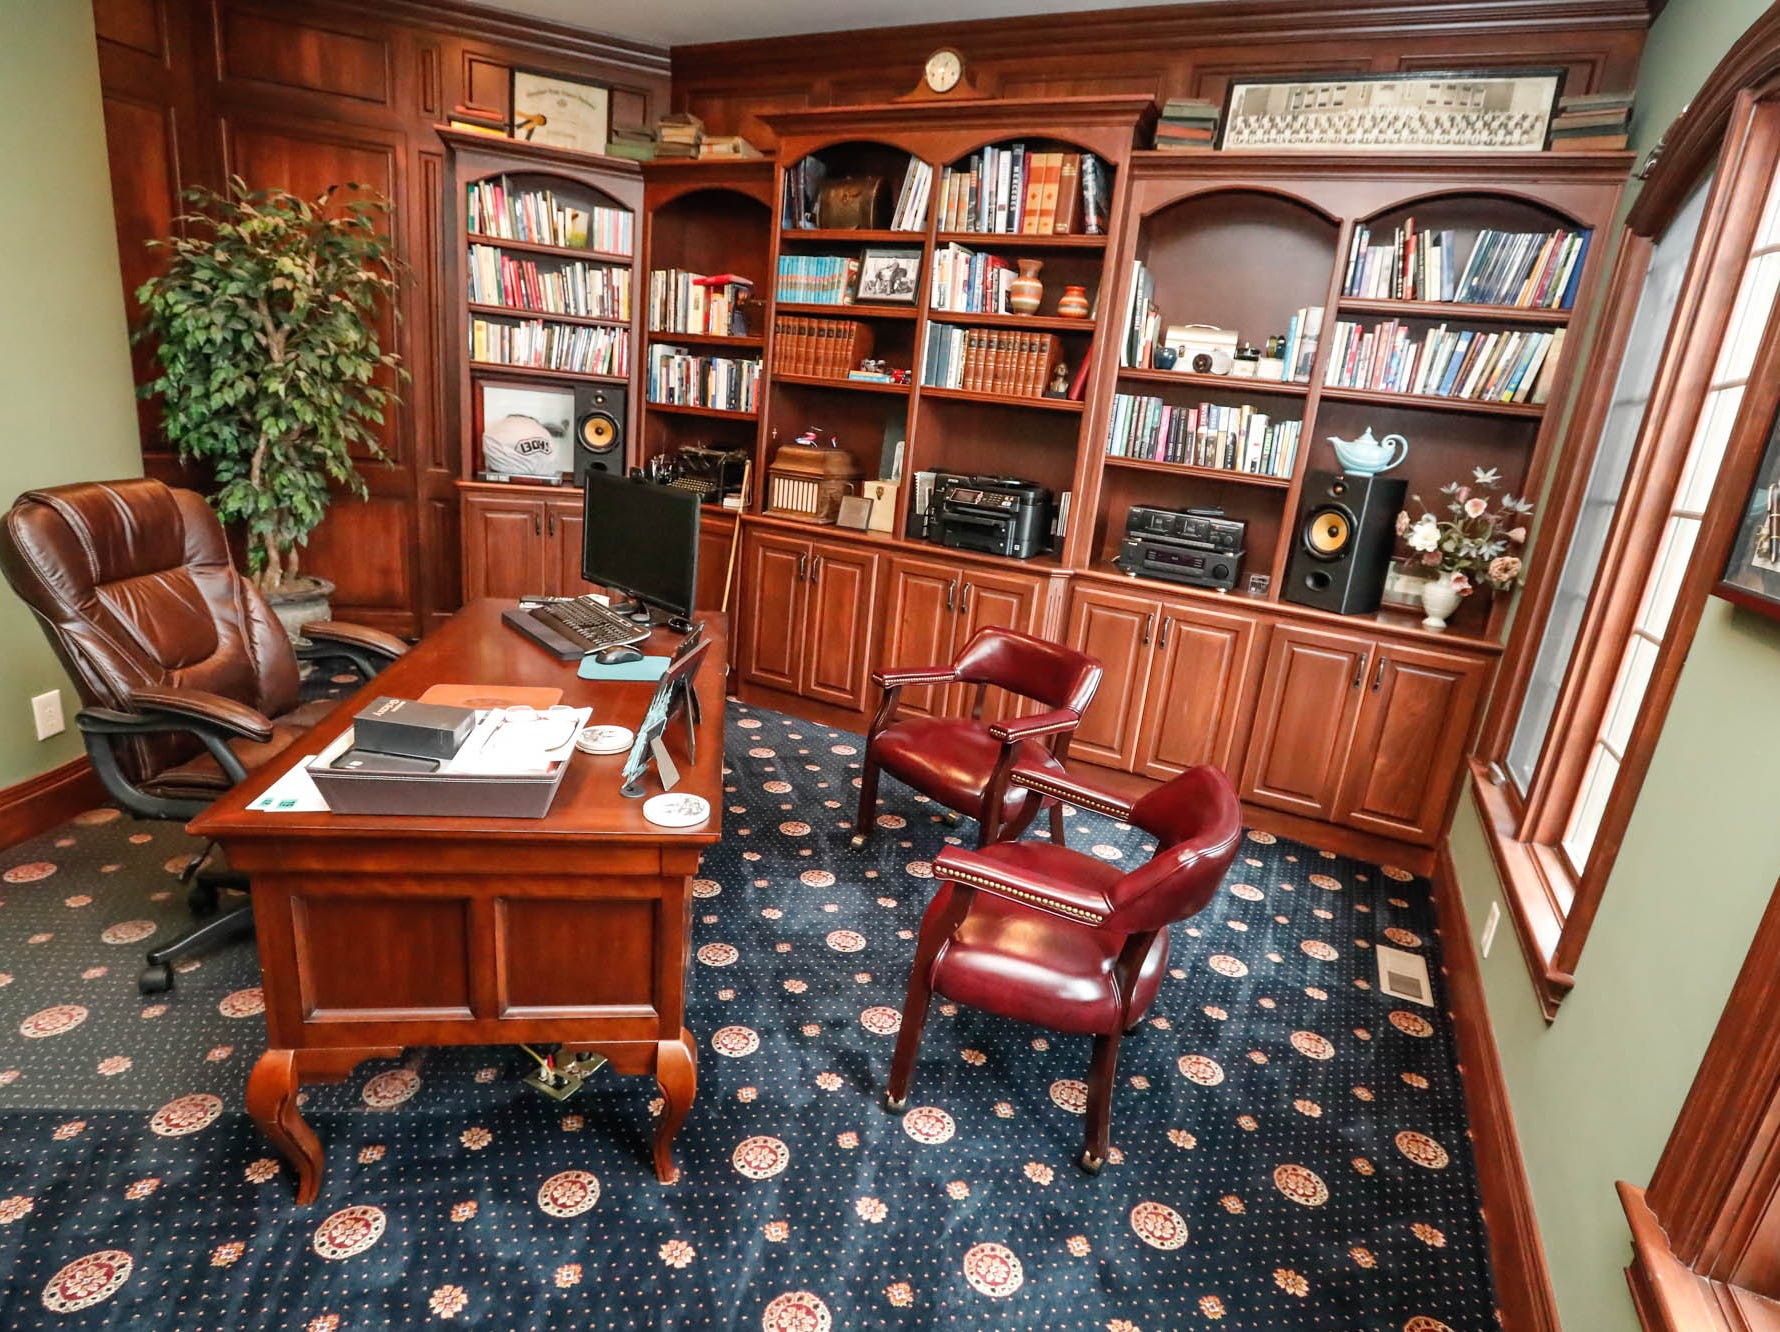 An office or den features plenty of shelving and a view in a $2 million Bargersville Ind. home up for sale on Wednesday, Jan. 9, 2019. The home sits on 8.1 acres.